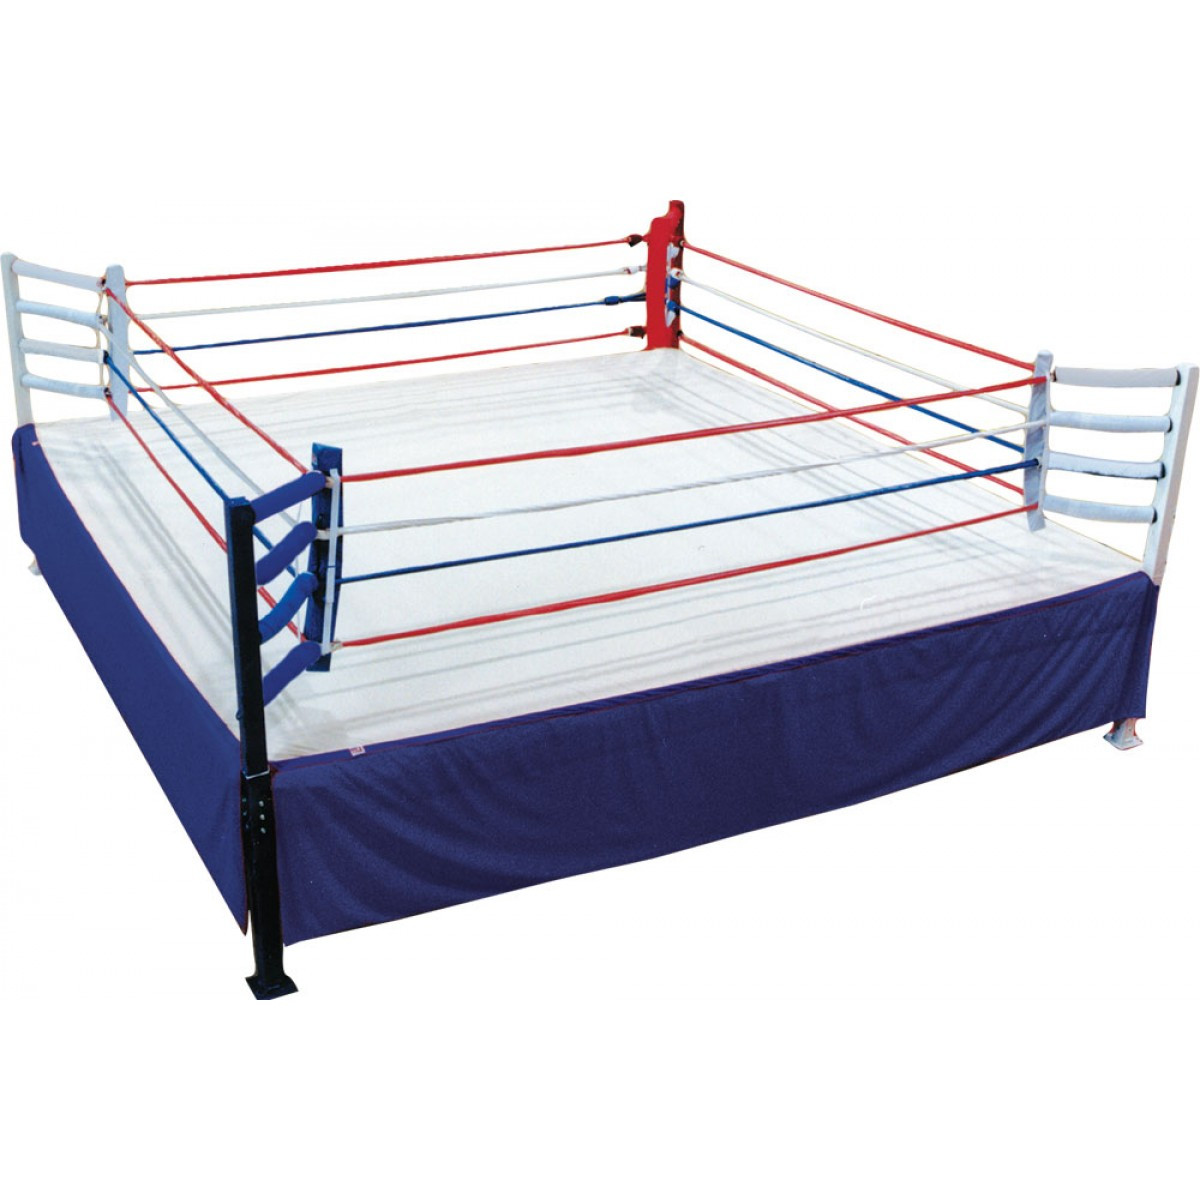 Prolast Classic Elevated Boxing Ring Boxing Store